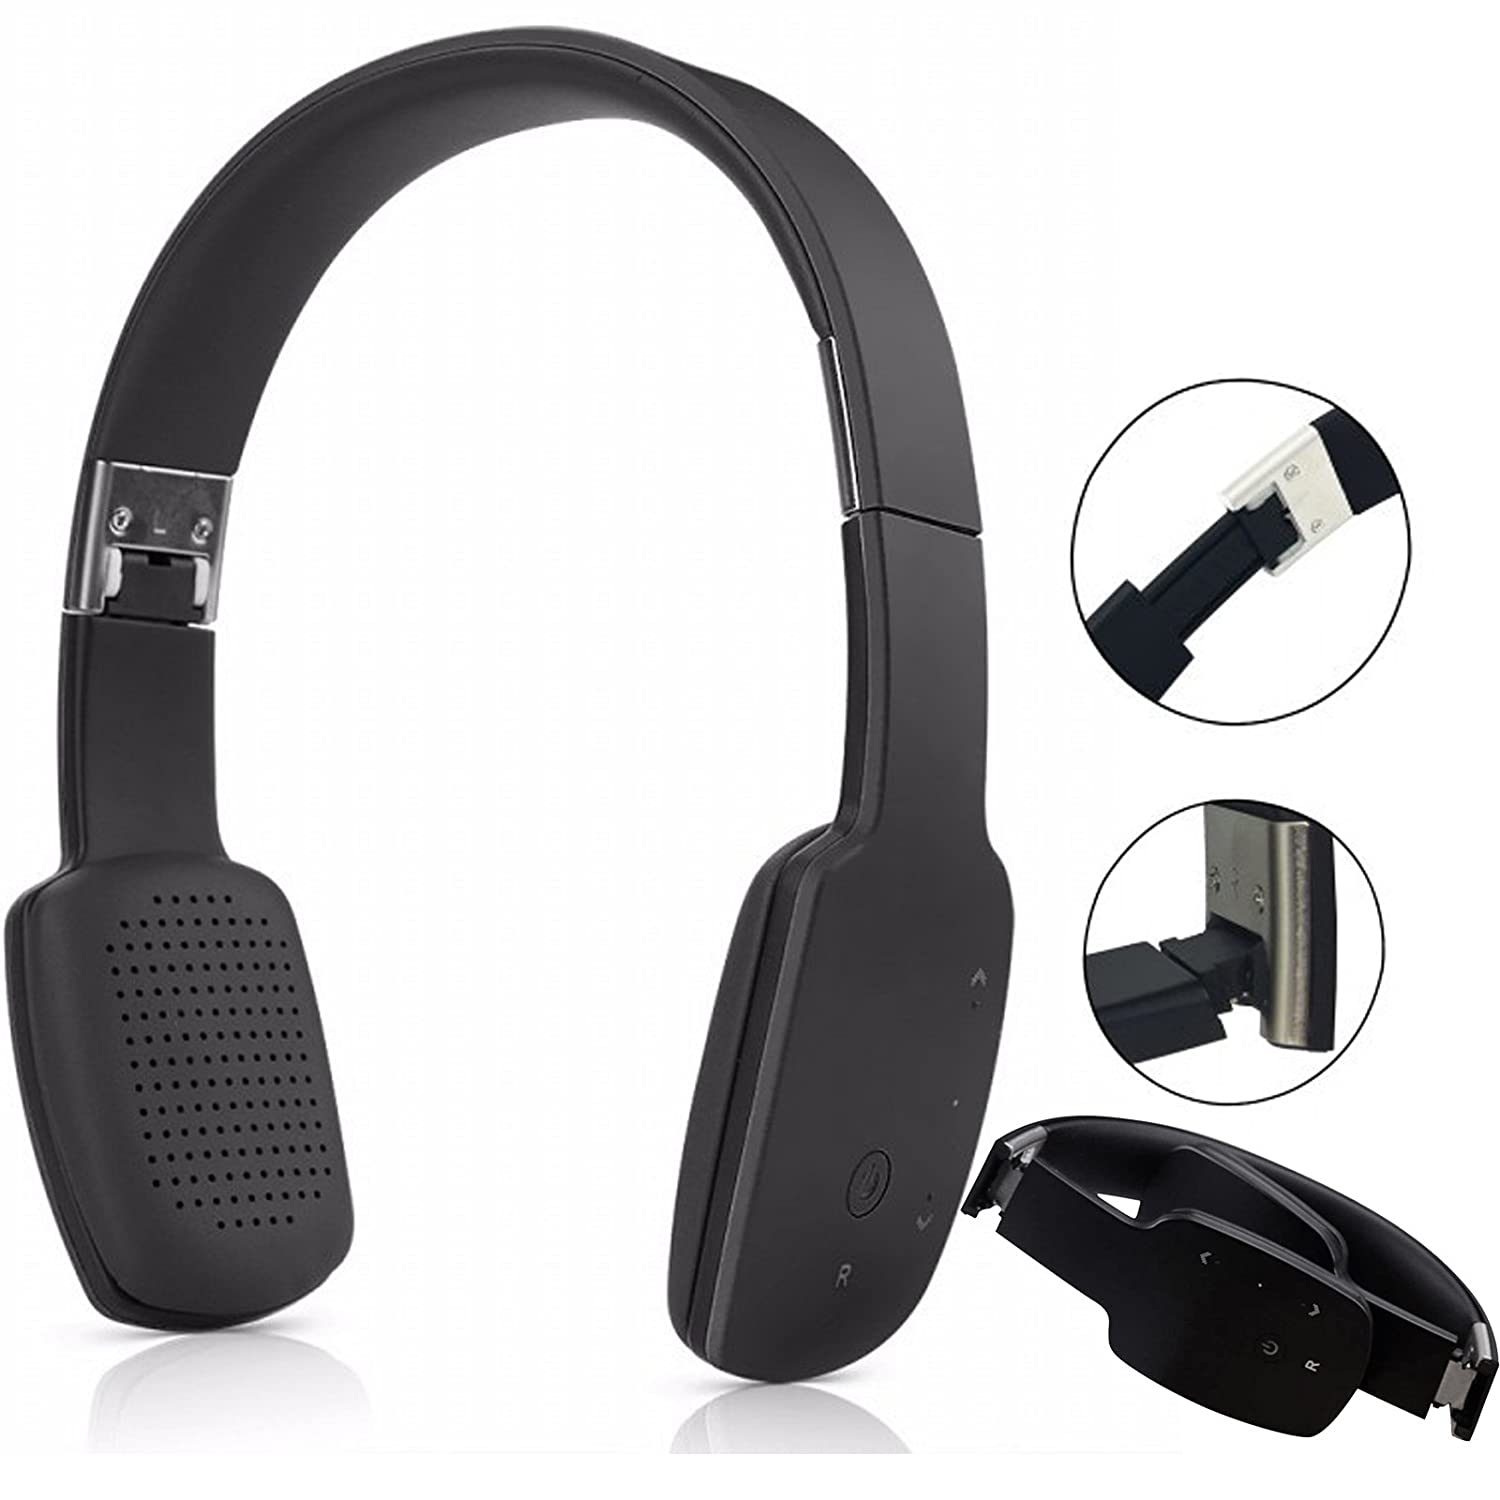 Bluetooth Headset Stereo Wireless Headphone Foldable Wired Headband Earphone with Mic Handsfree for Cellphones PC Laptop Tablet (Black)